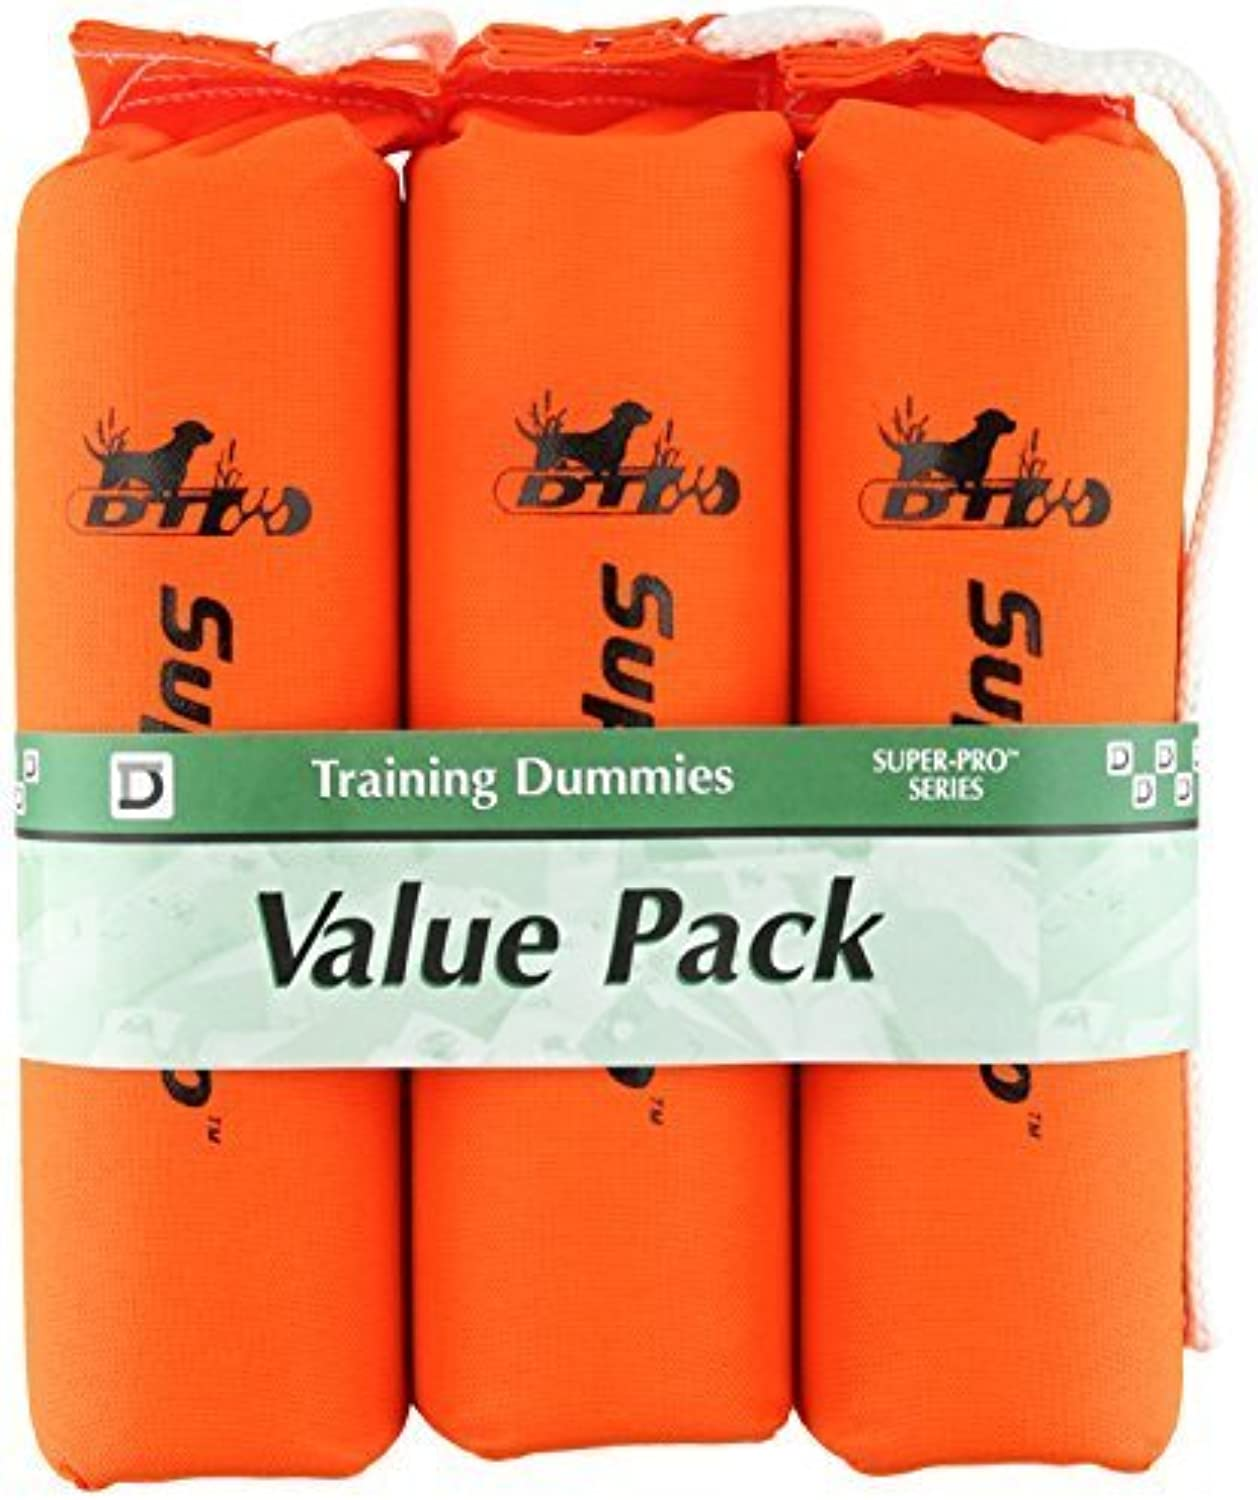 D.T. Systems Cordura Nylon Dog Training Dummy, Blaze orange, Large, 3Inch by 12Inch, 3Pack by D.T. Systems